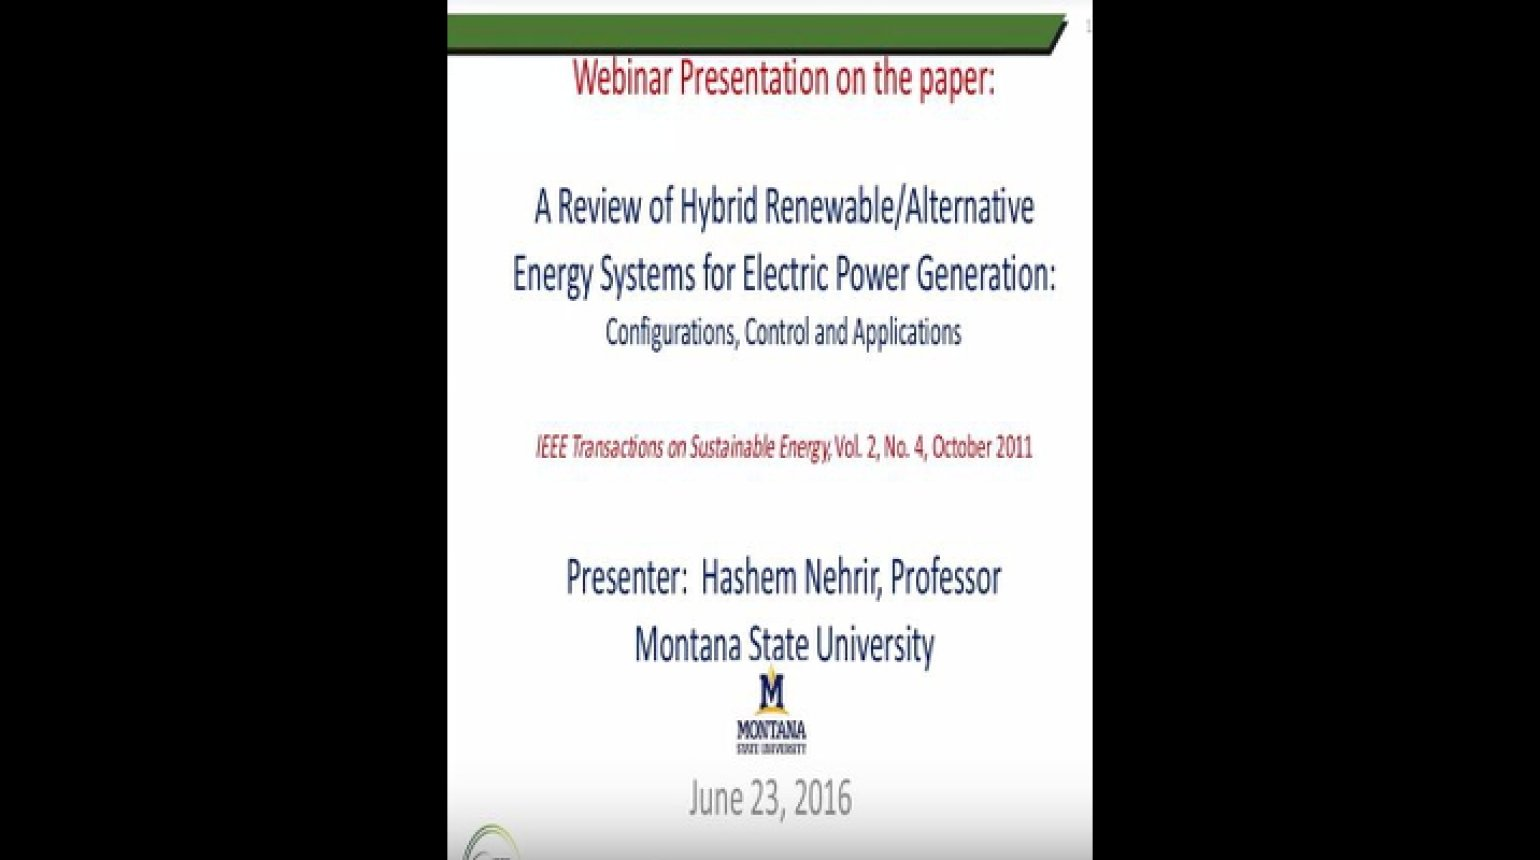 A Review of Hybrid Renewable Alternative Energy System for Electric Power Generation Configuration, Control, and Applications